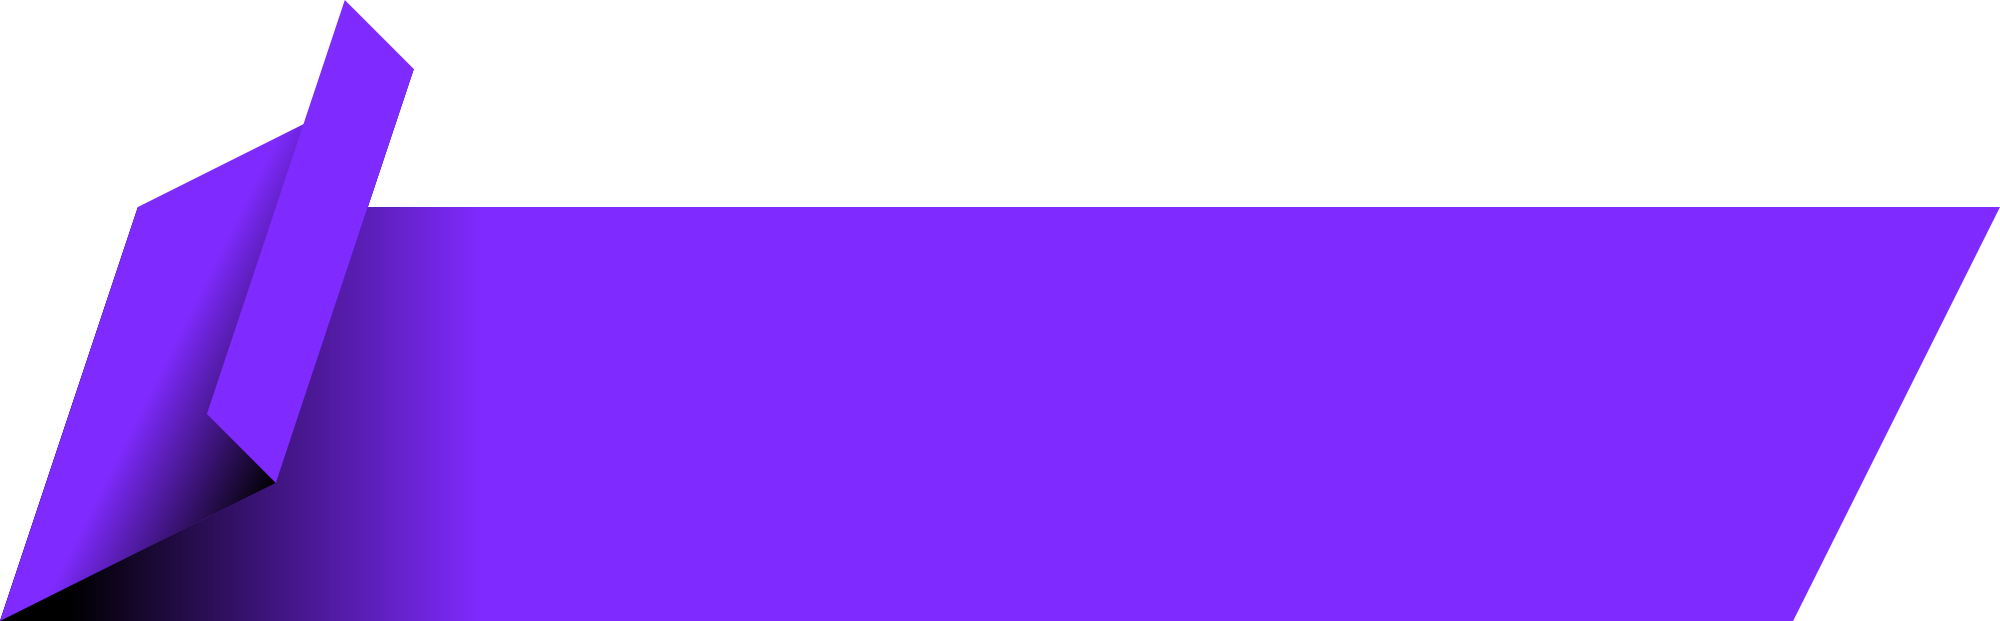 Purple Banner PNG Transparent SVG Clip arts